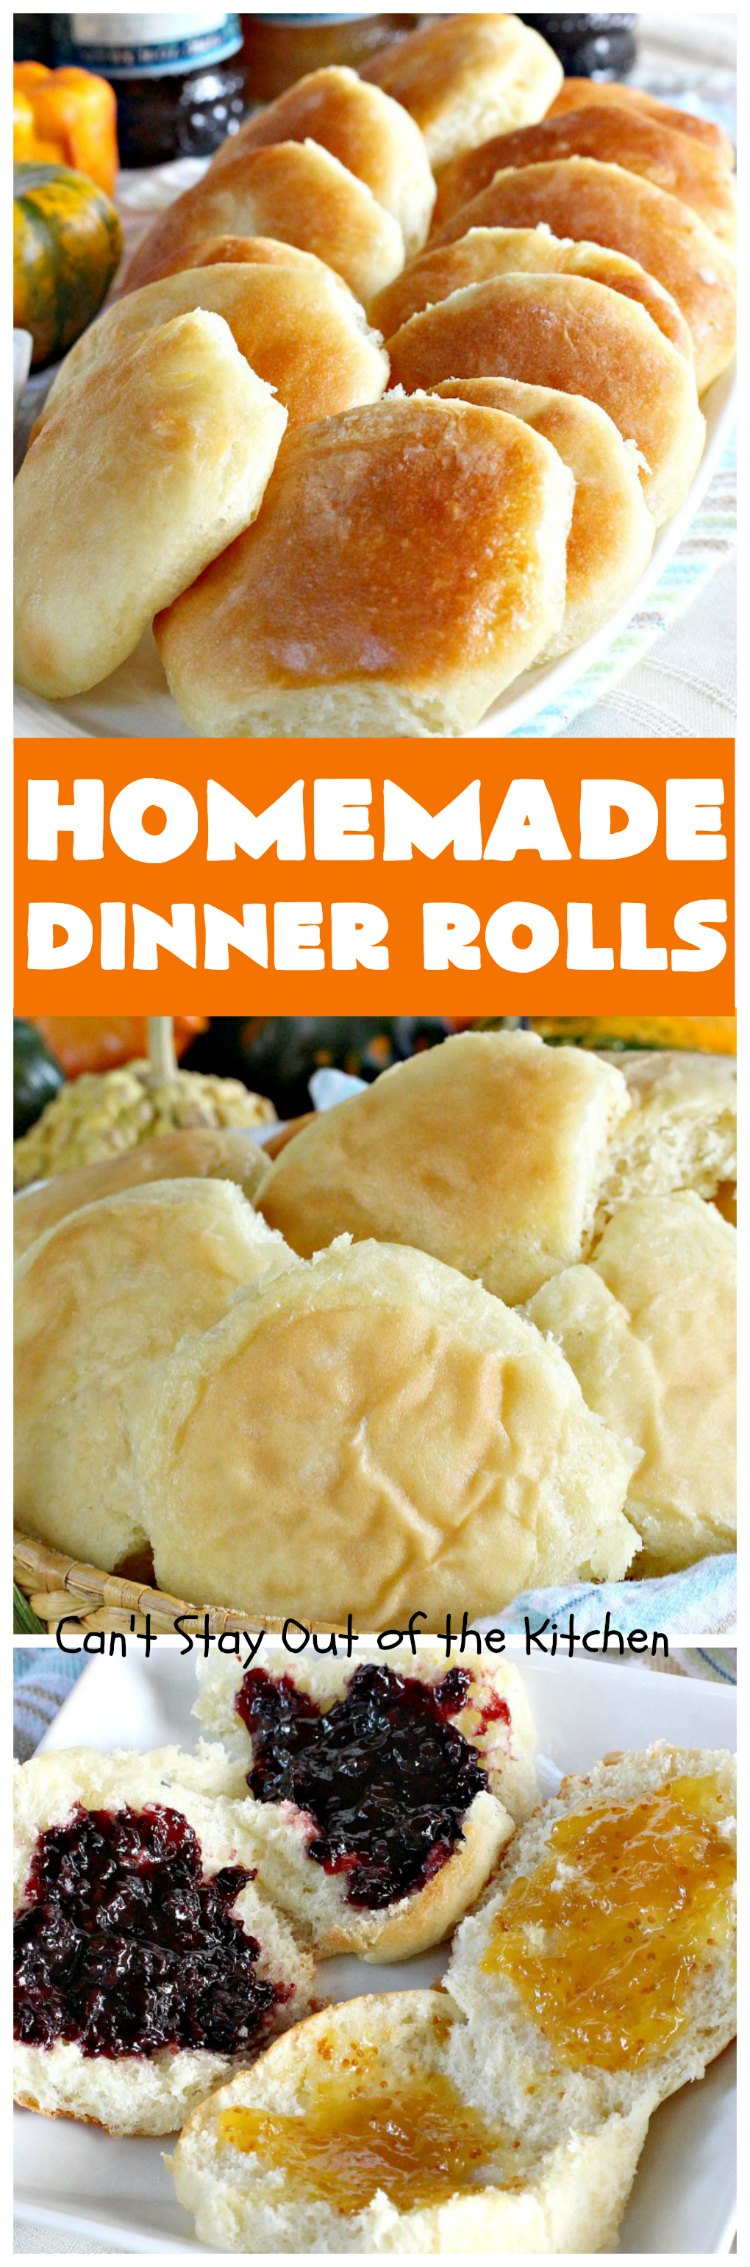 Homemade Dinner Rolls | Can't Stay Out of the Kitchen